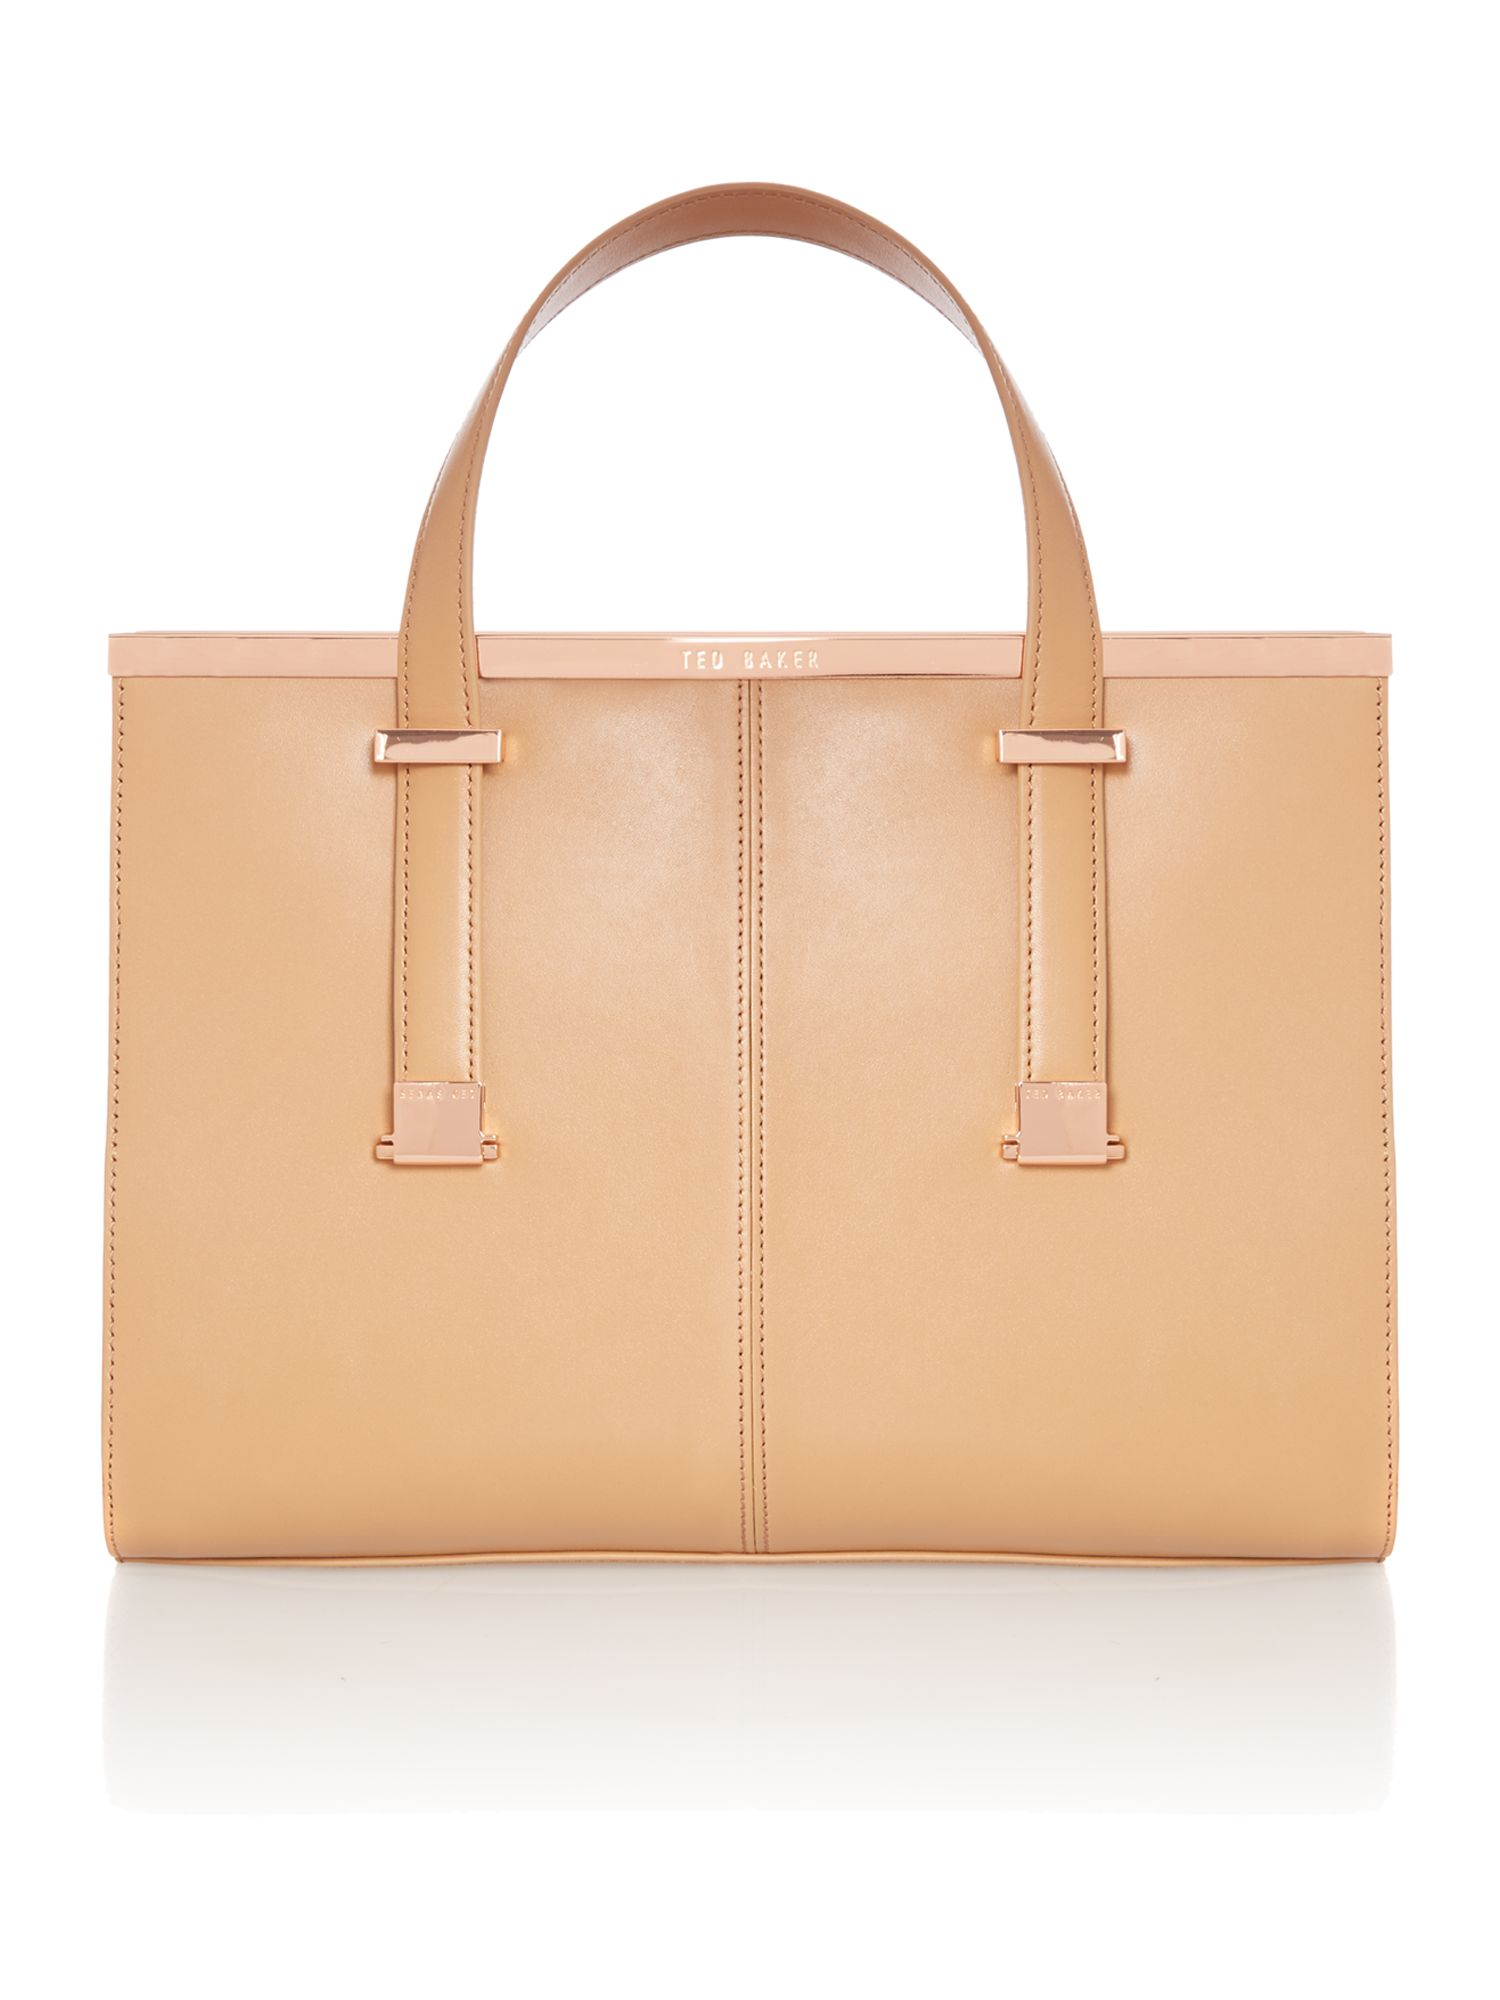 Medium leather tan metal bar tote bag